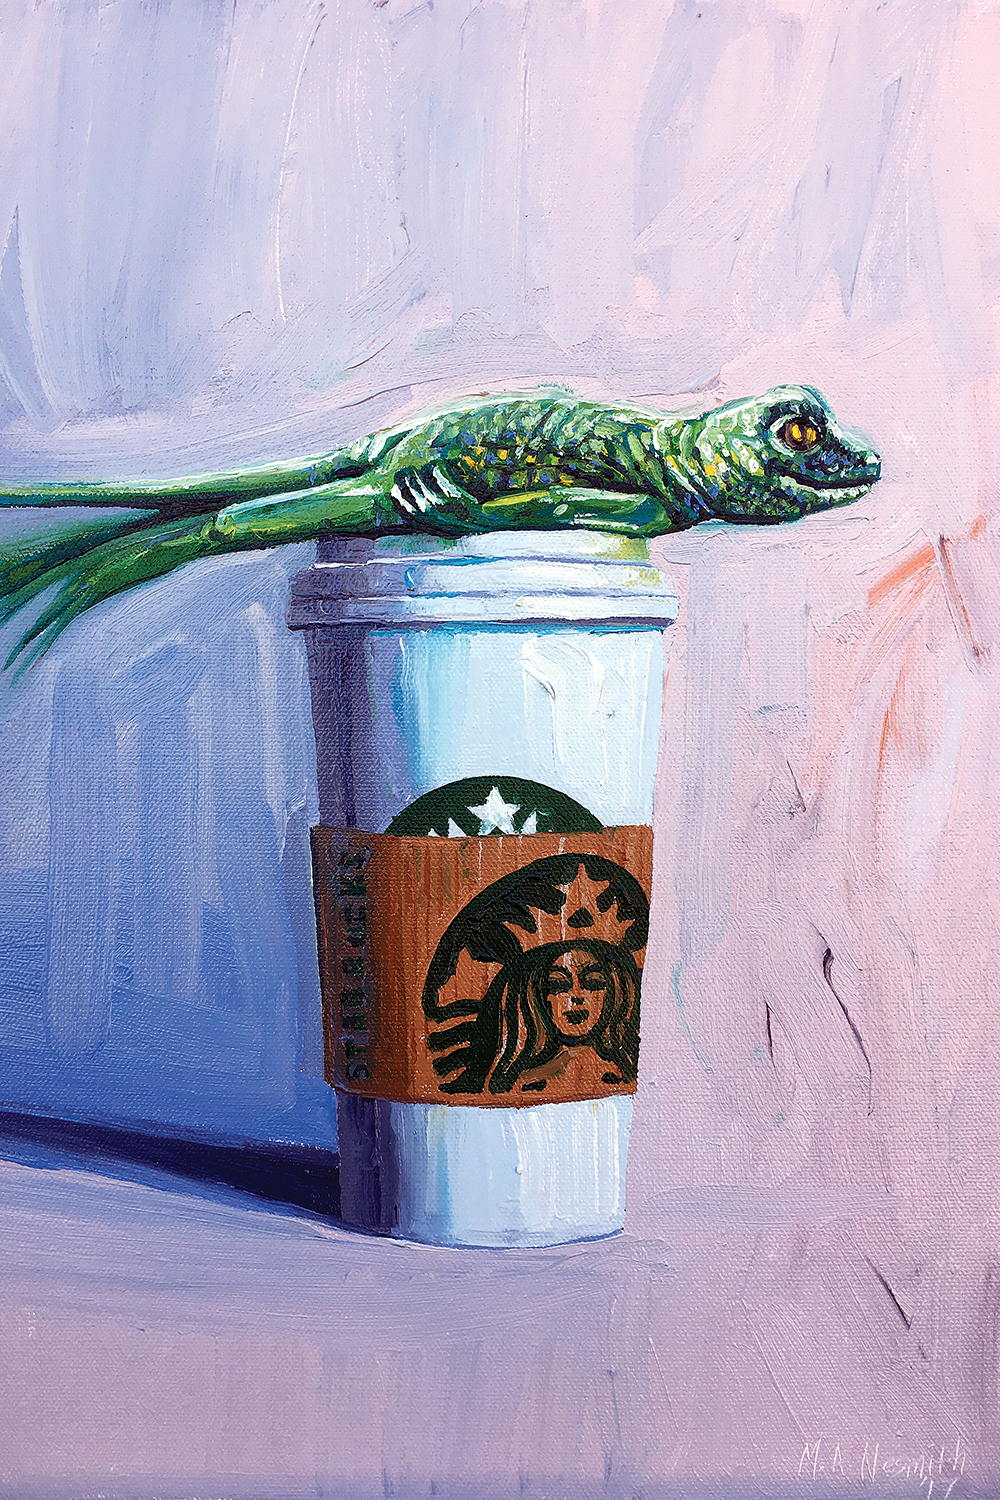 a green lizard planking on top of a venti starbucks cup